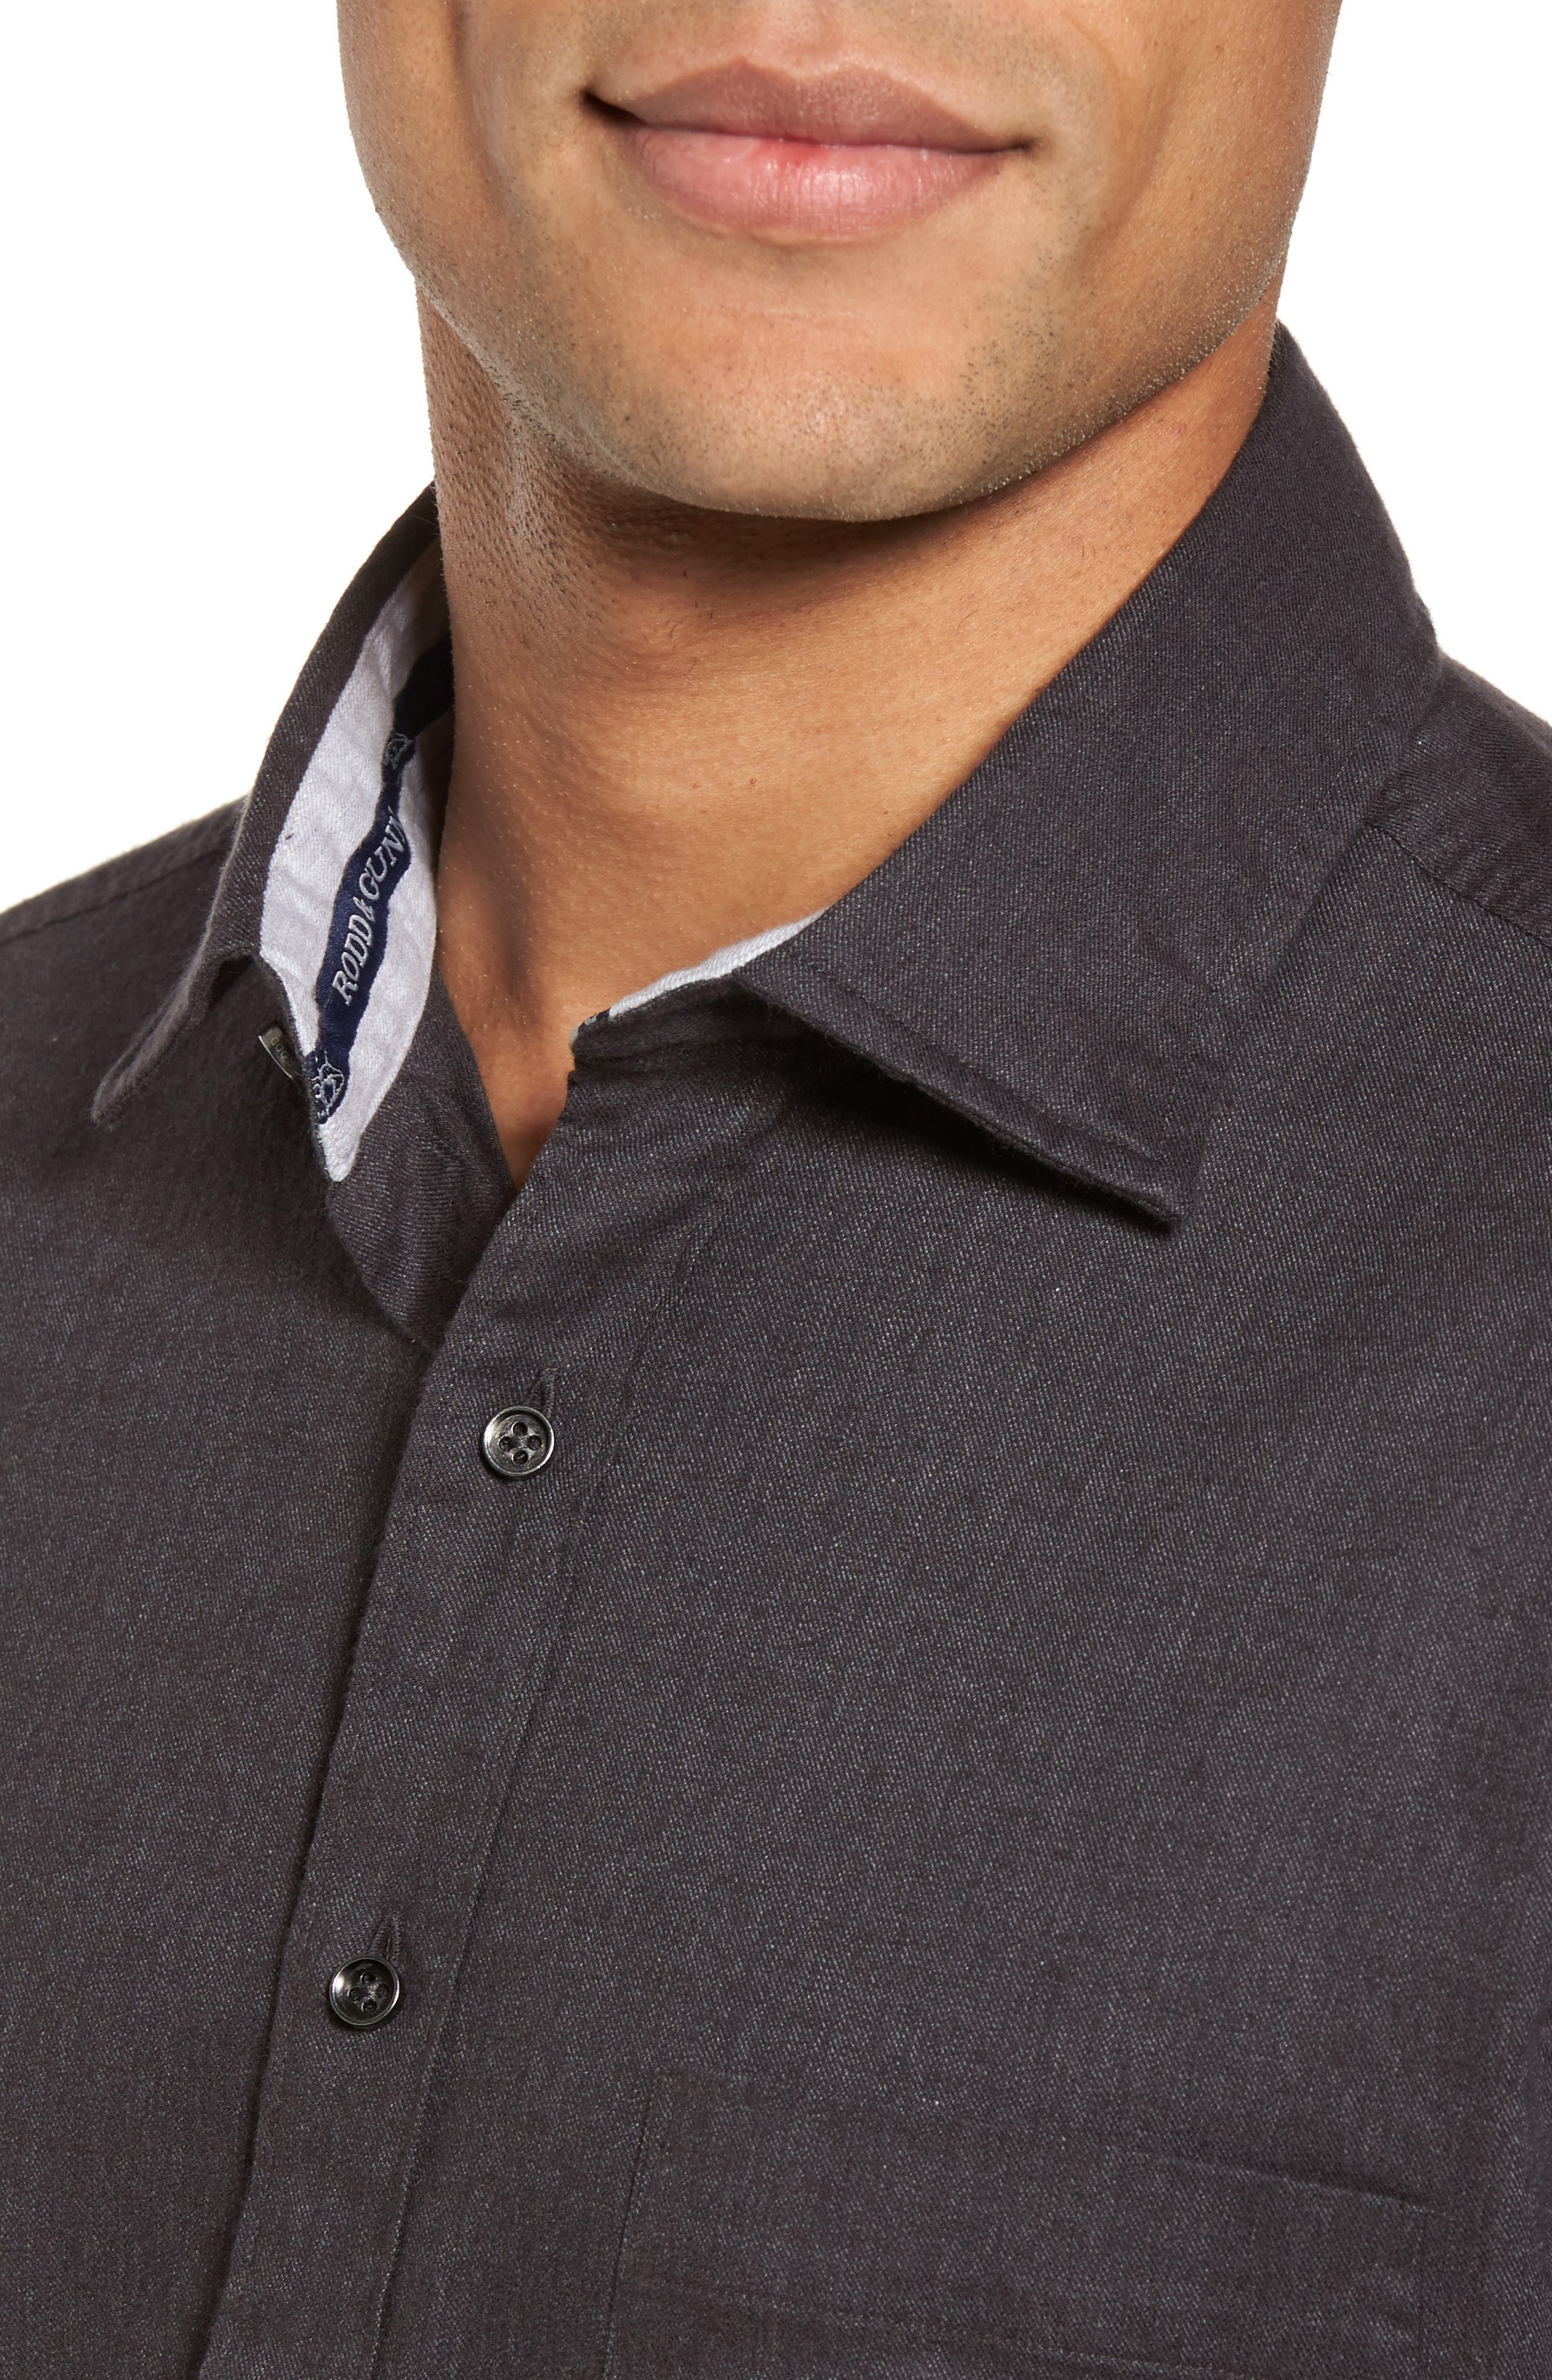 'Sinclair' Trim Fit Brushed Twill Sport Shirt,                             Alternate thumbnail 4, color,                             021